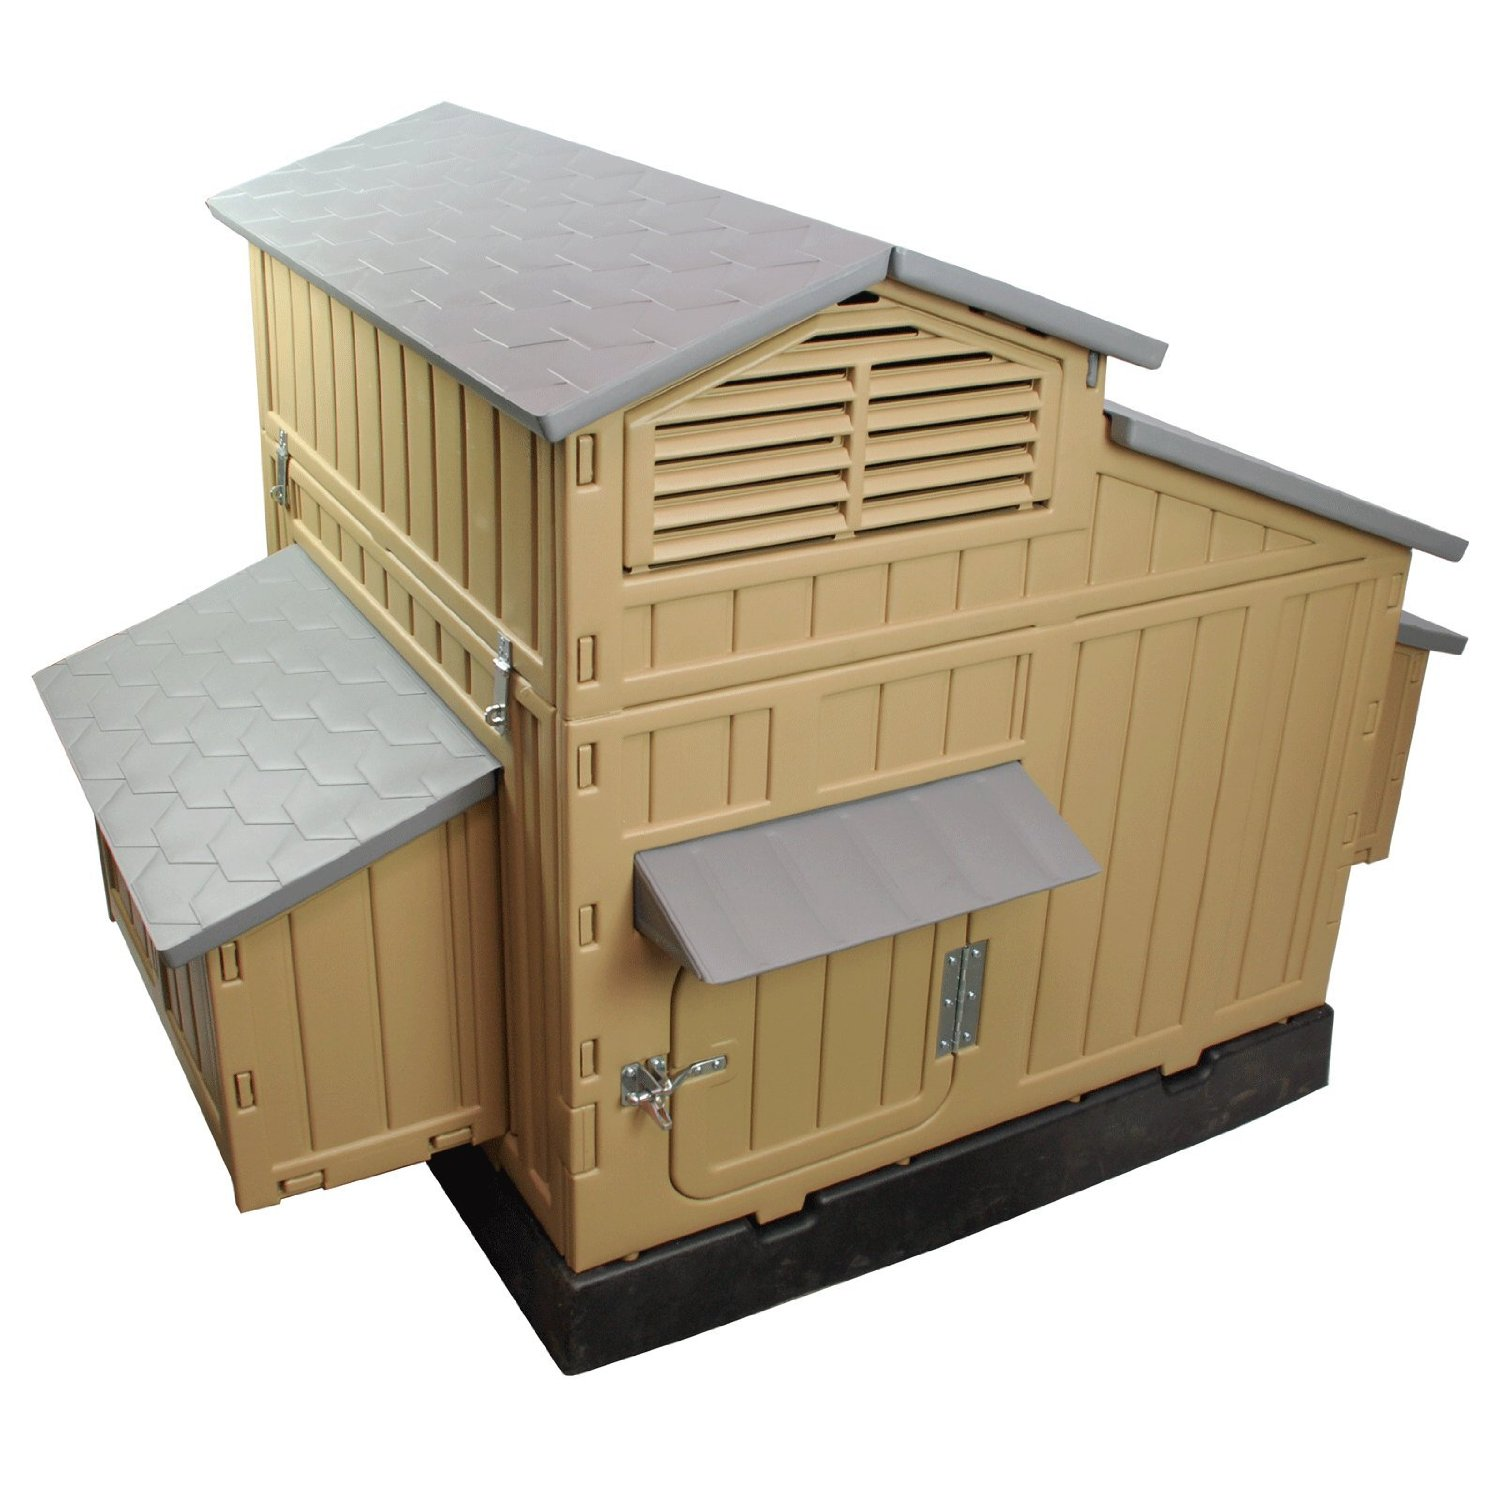 Best chicken coop raising chickens for eggs for Chicken coop size for 6 chickens